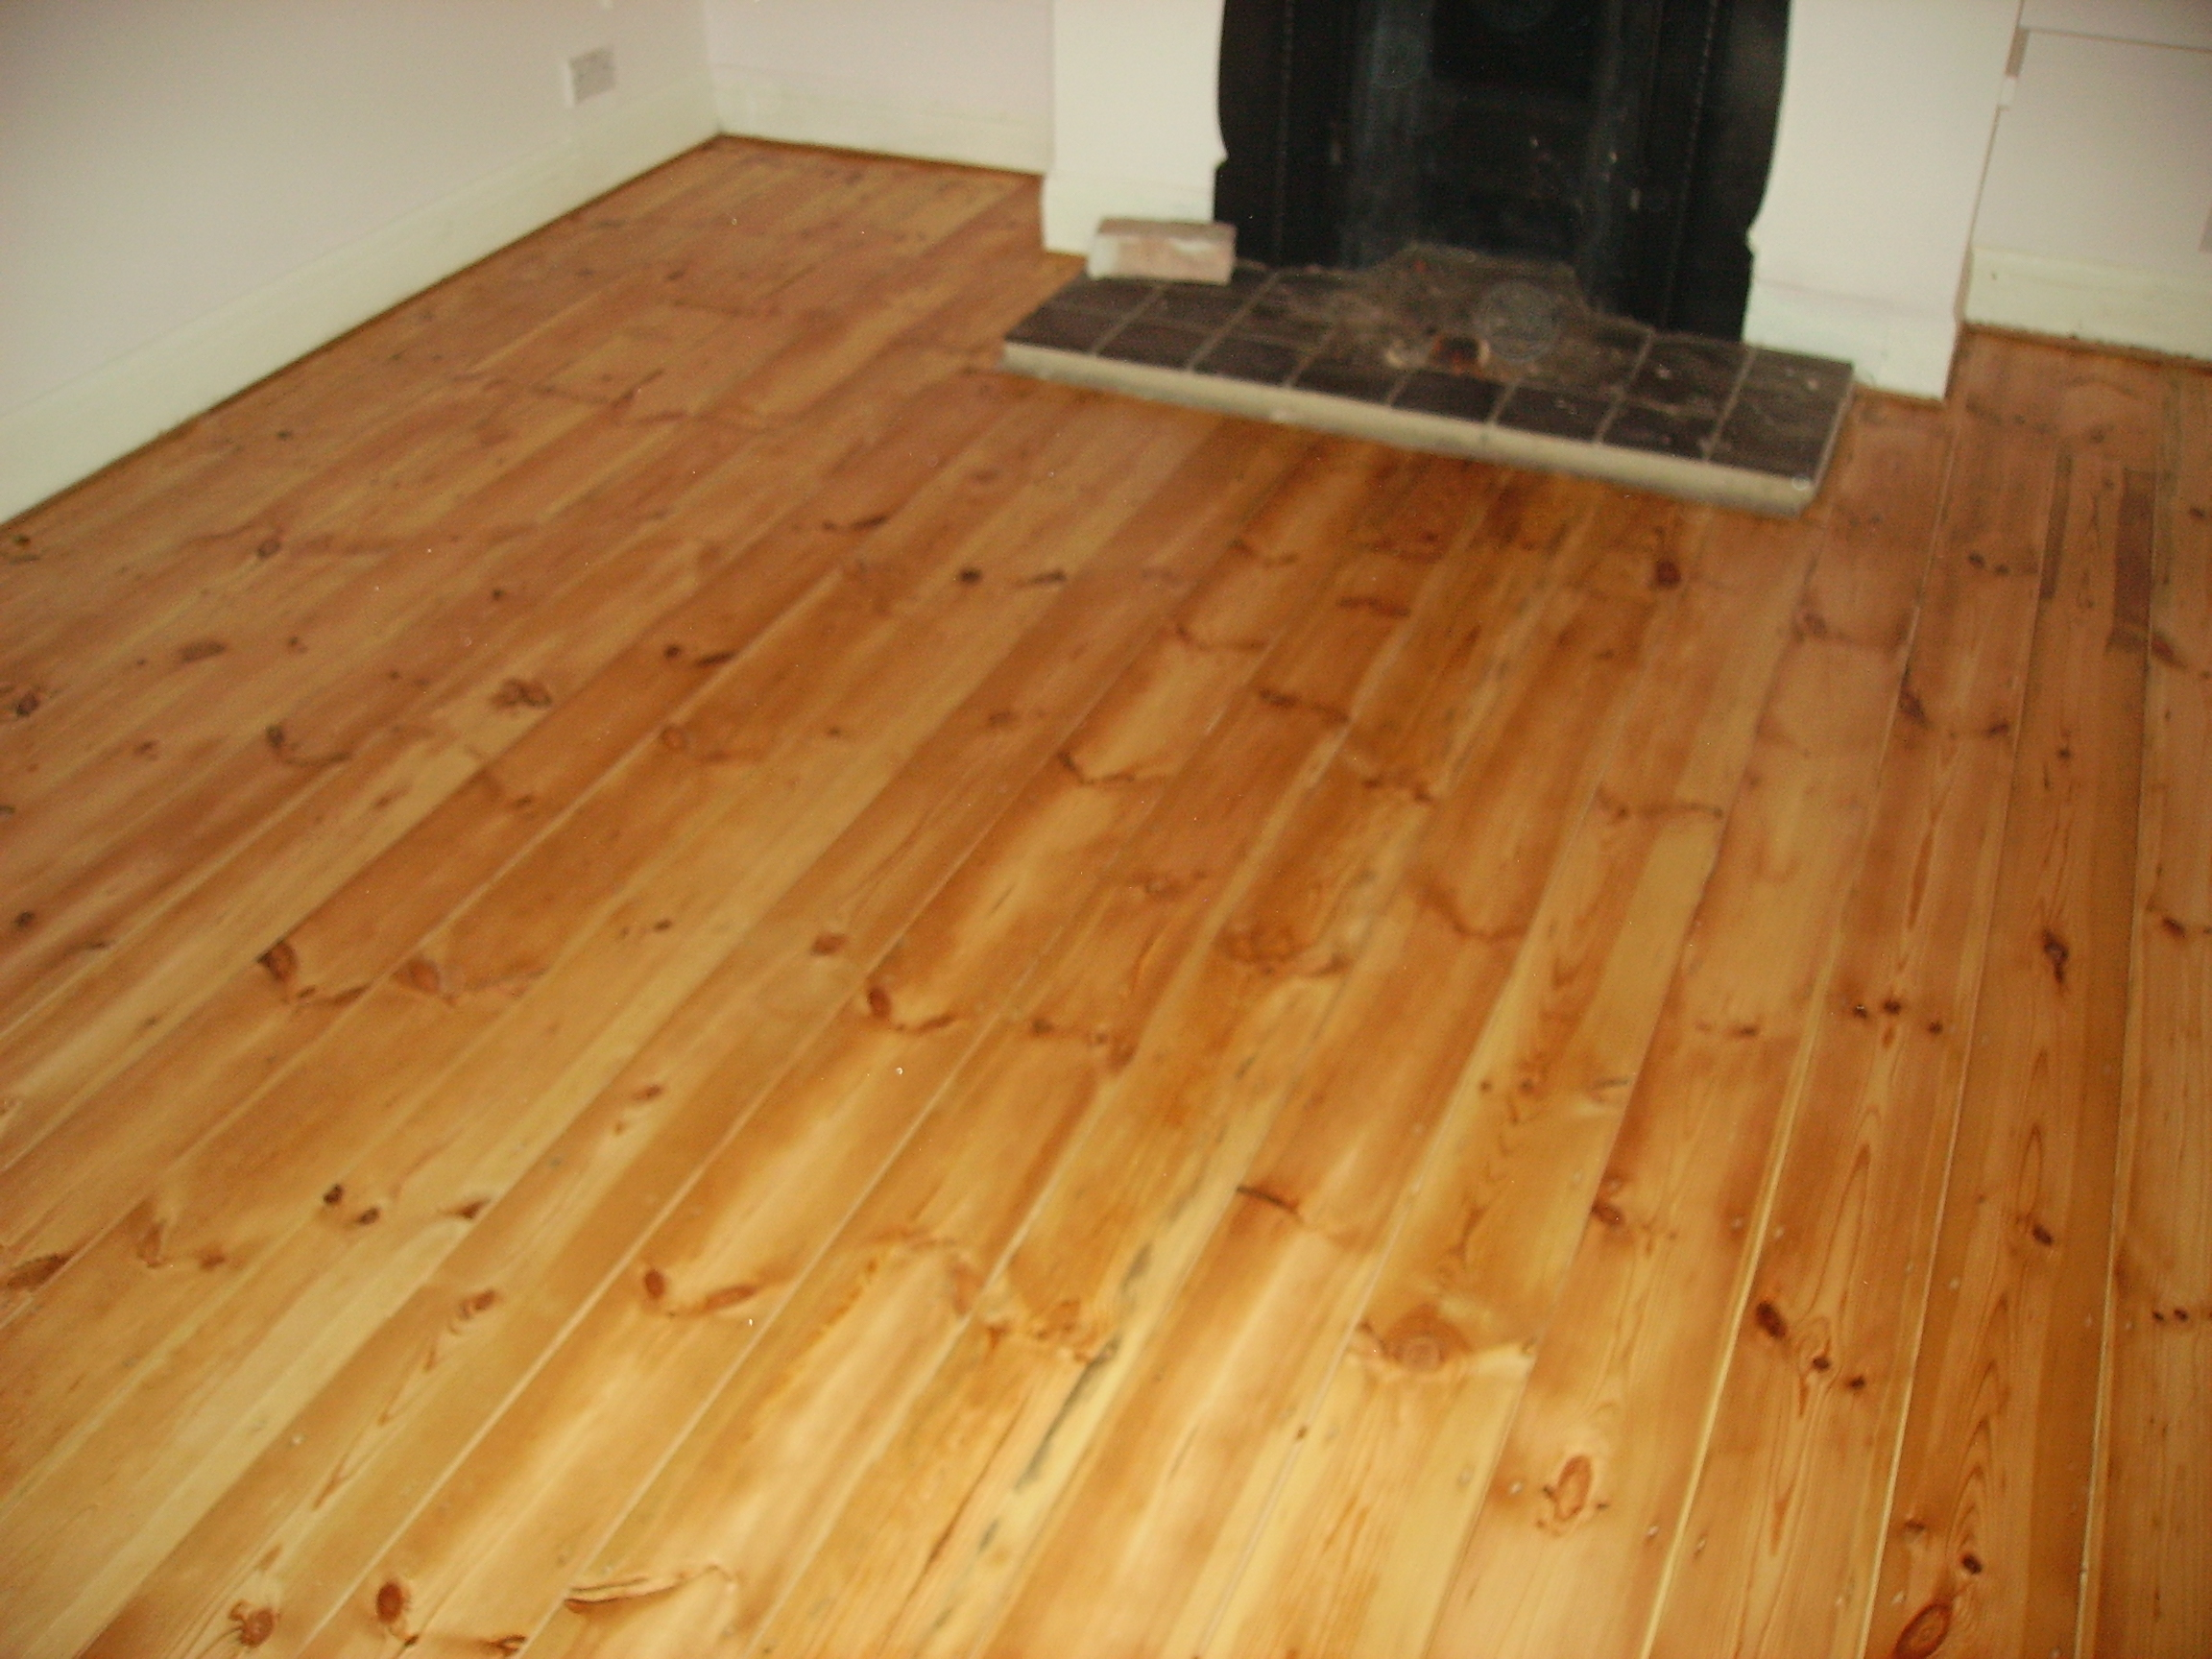 Original pine flooring - gaps filled with larch slivers, sanded and varnished.